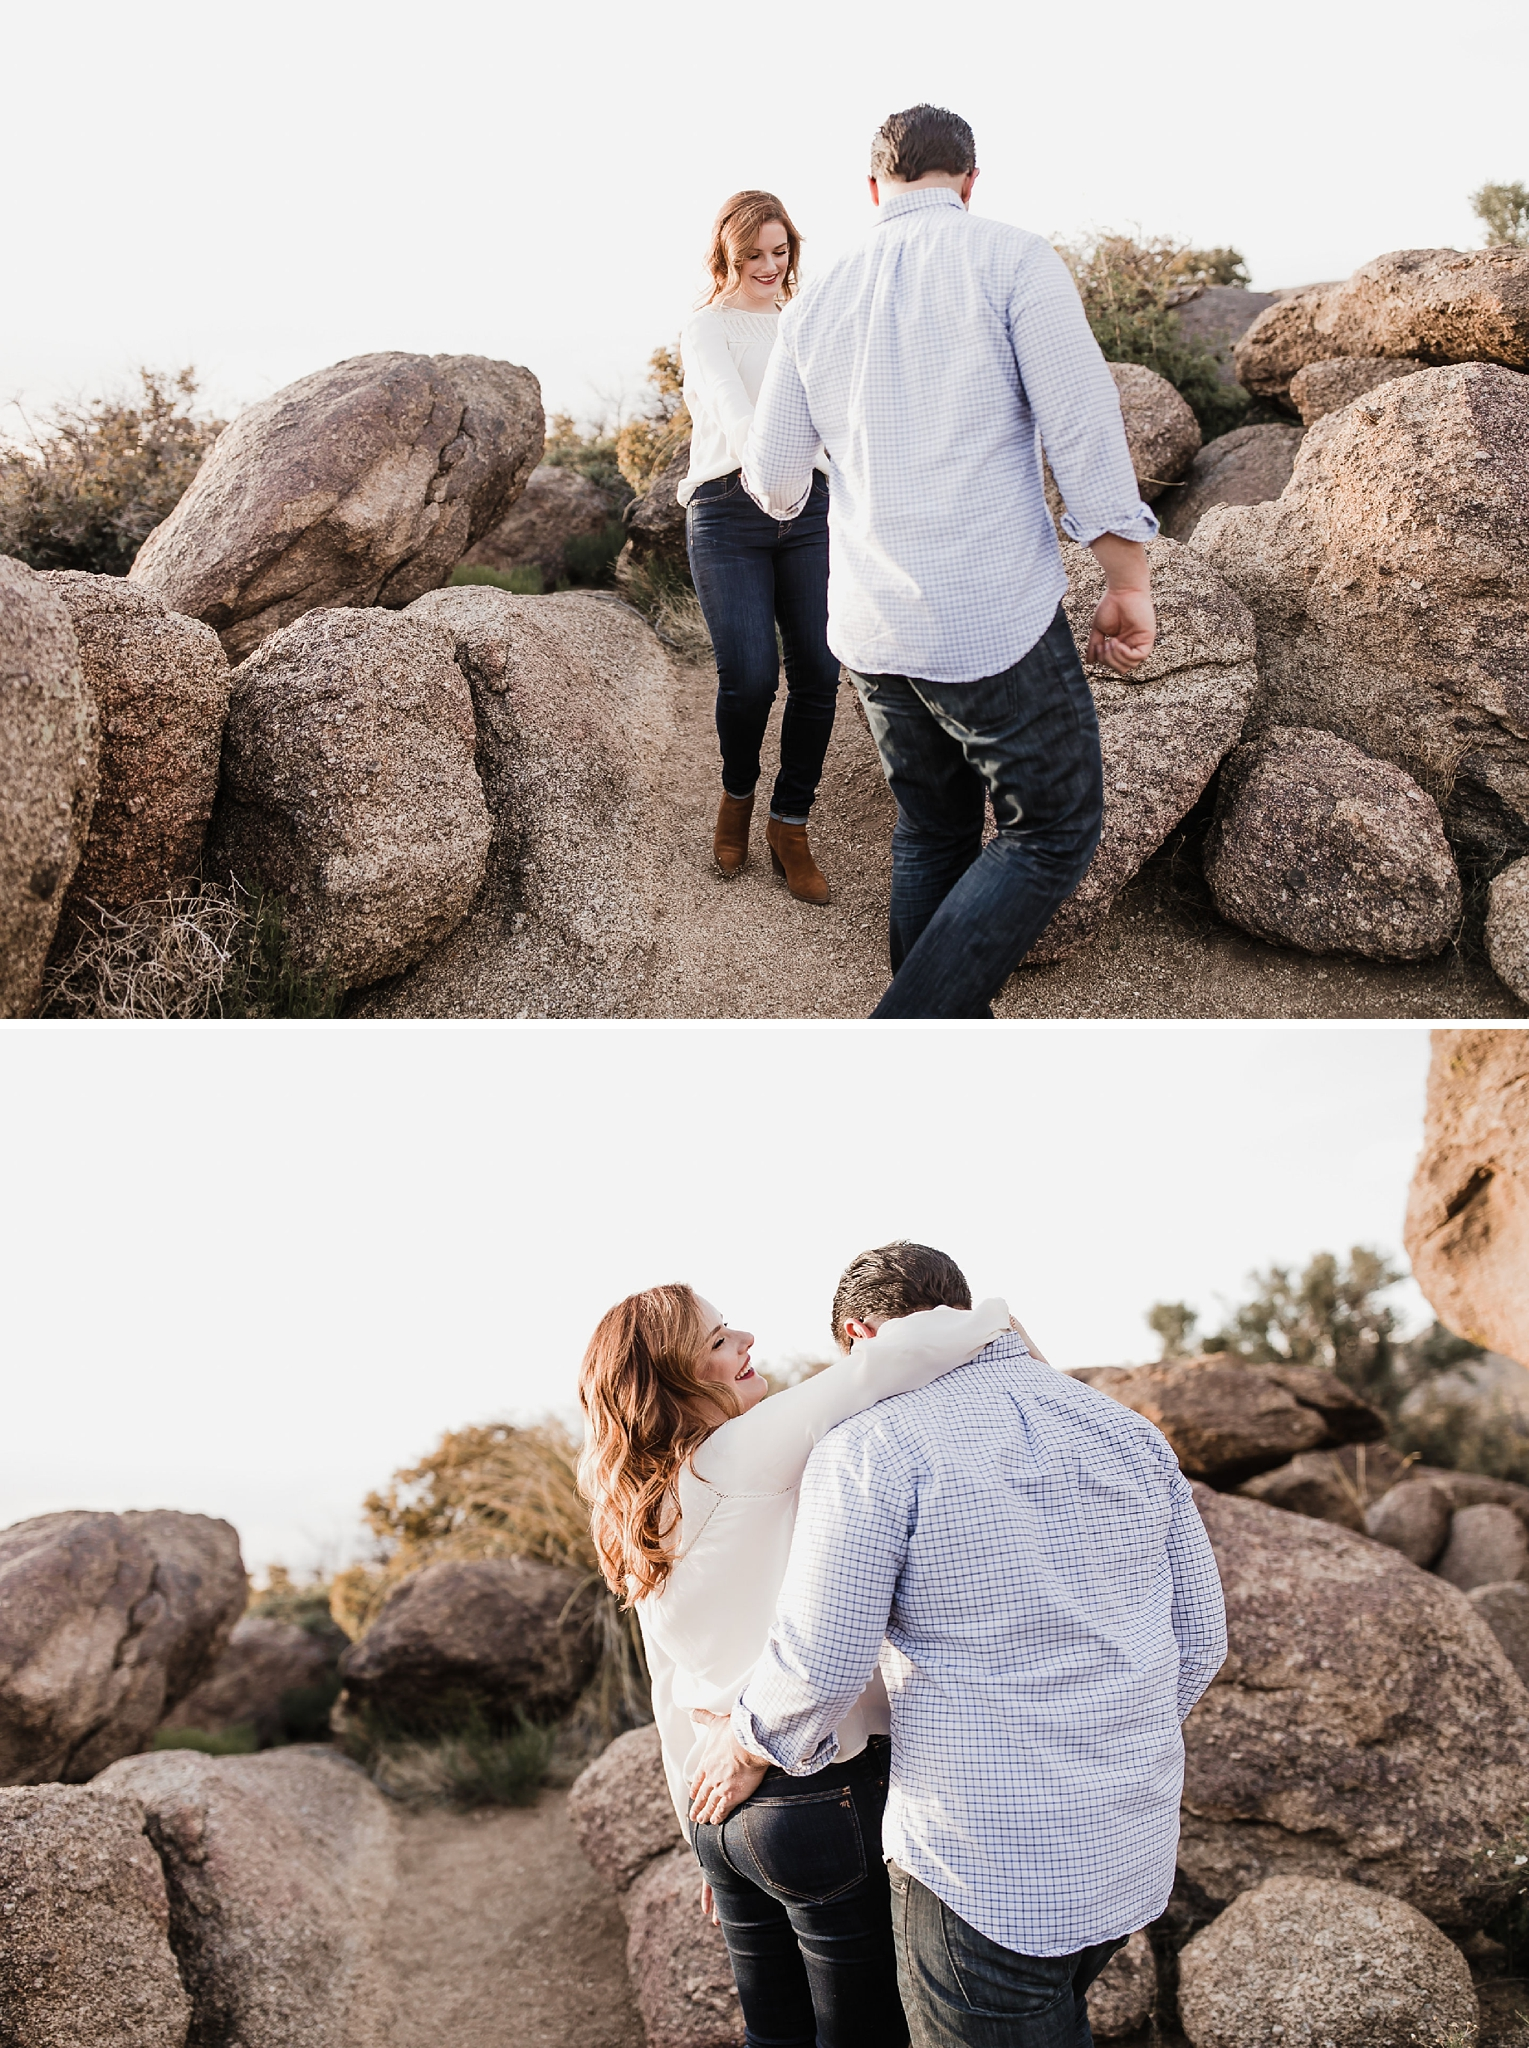 Alicia+lucia+photography+-+albuquerque+wedding+photographer+-+santa+fe+wedding+photography+-+new+mexico+wedding+photographer+-+new+mexico+wedding+-+new+mexico+engagement+-+engagement+photographer+-+mountain+engagement+-+desert+engagement_0005.jpg